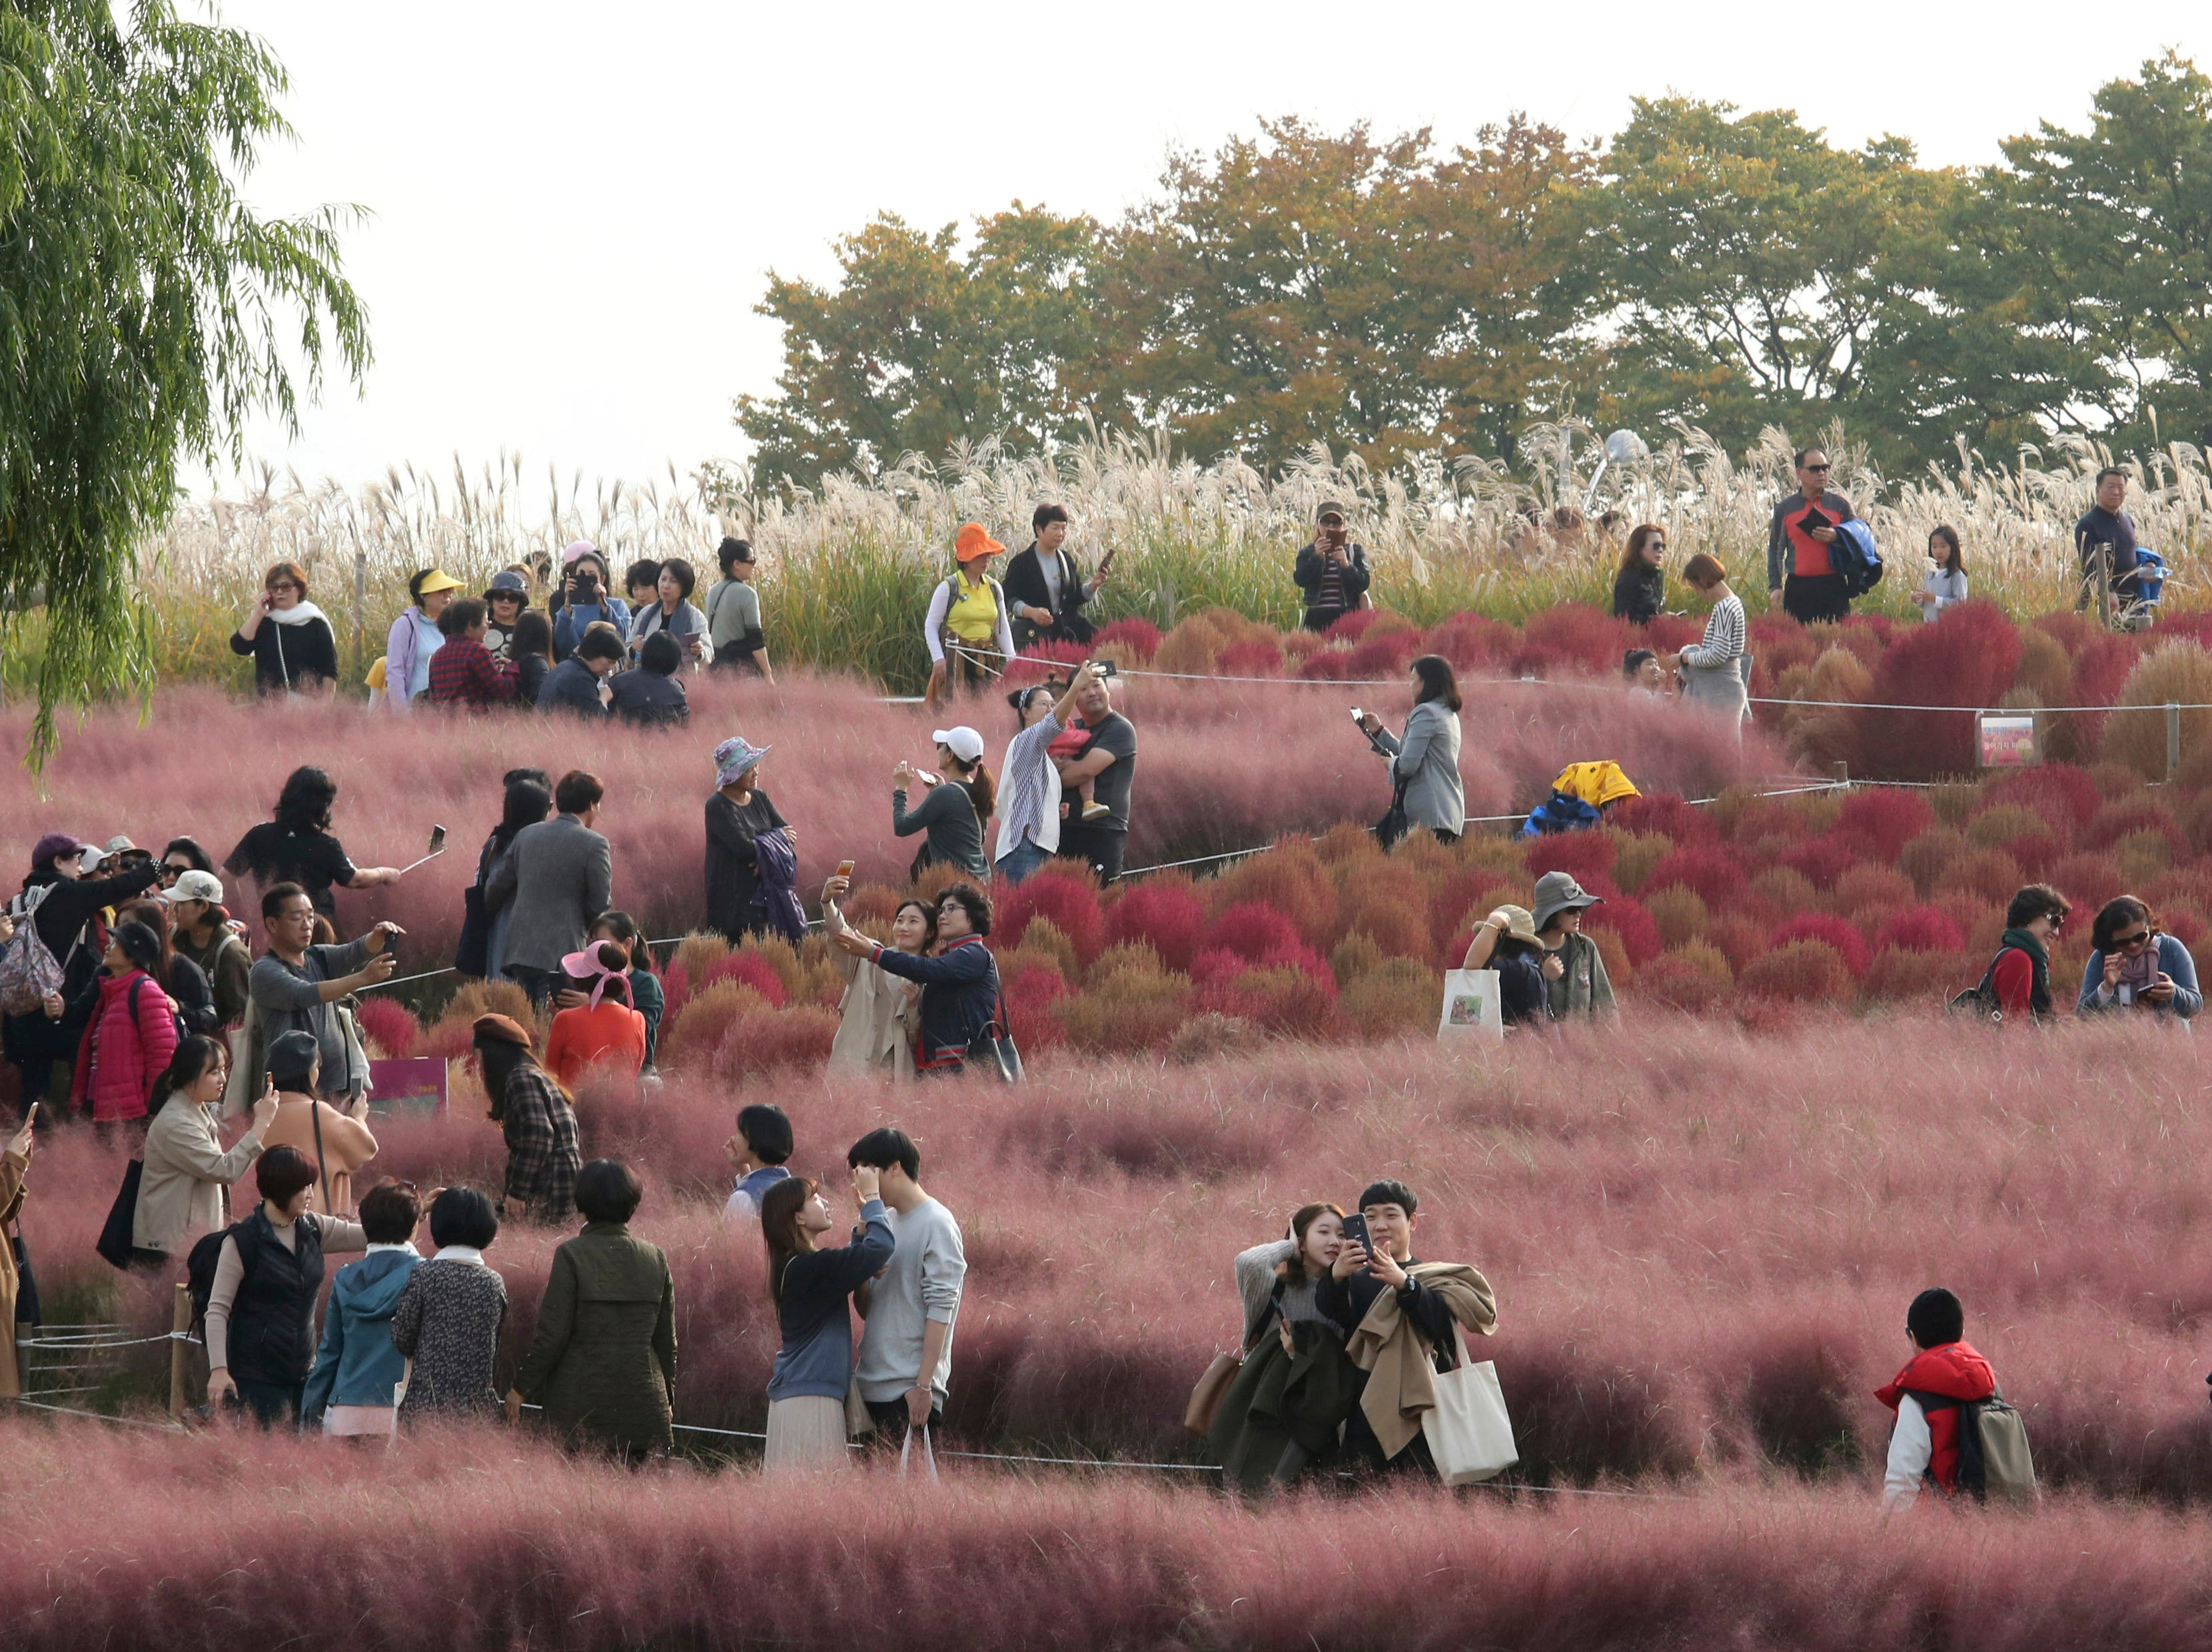 Visitors enjoy in pink muhly grass field at Sky Park in Seoul, South Korea, Monday, Oct. 22, 2018. Sky Park is a part of World Cup Park which was a Seoul's landfill and now is an ecological park built to commemorate the 2002 Korea Japan FIFA World Cup.